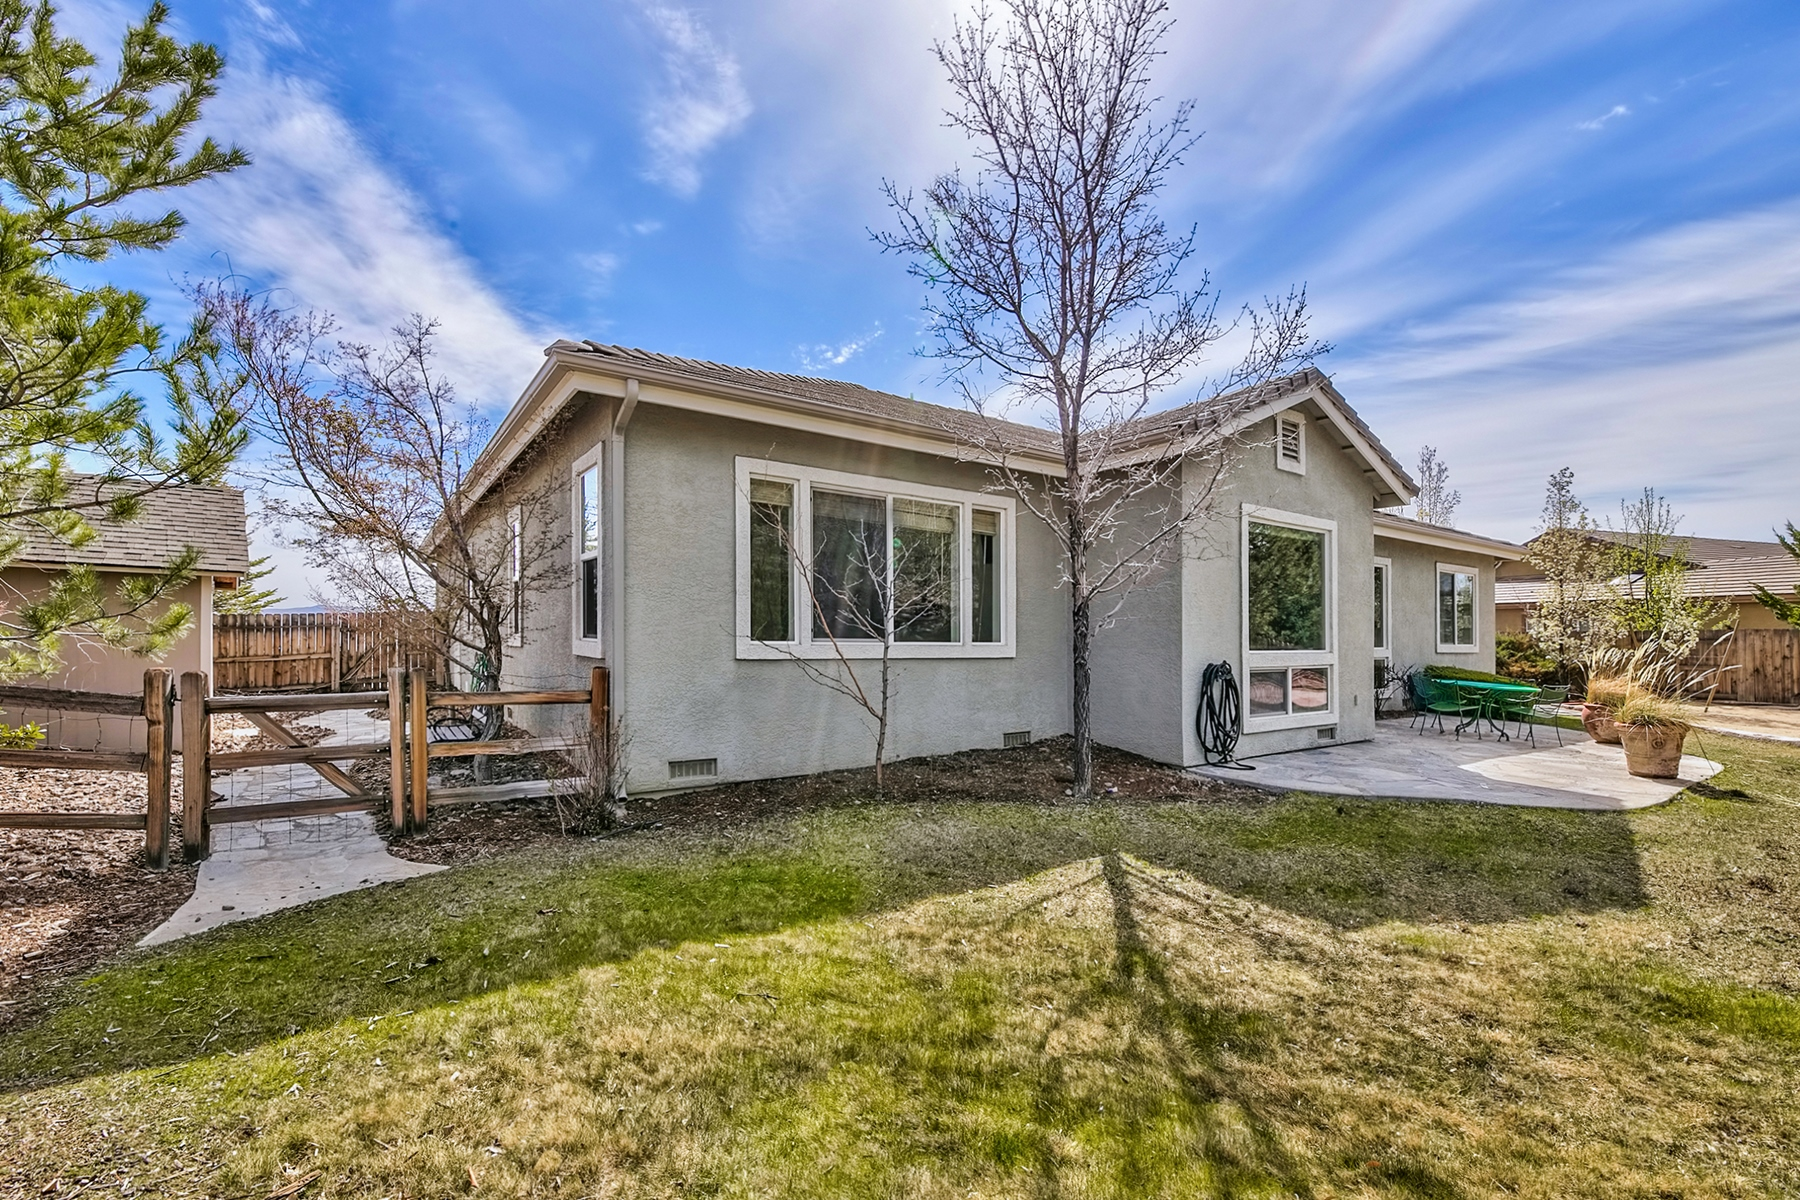 Additional photo for property listing at 2746 Sky Horse Trail, Reno NV 89511 2746 Sky Horse Trail Reno, Nevada 89511 United States